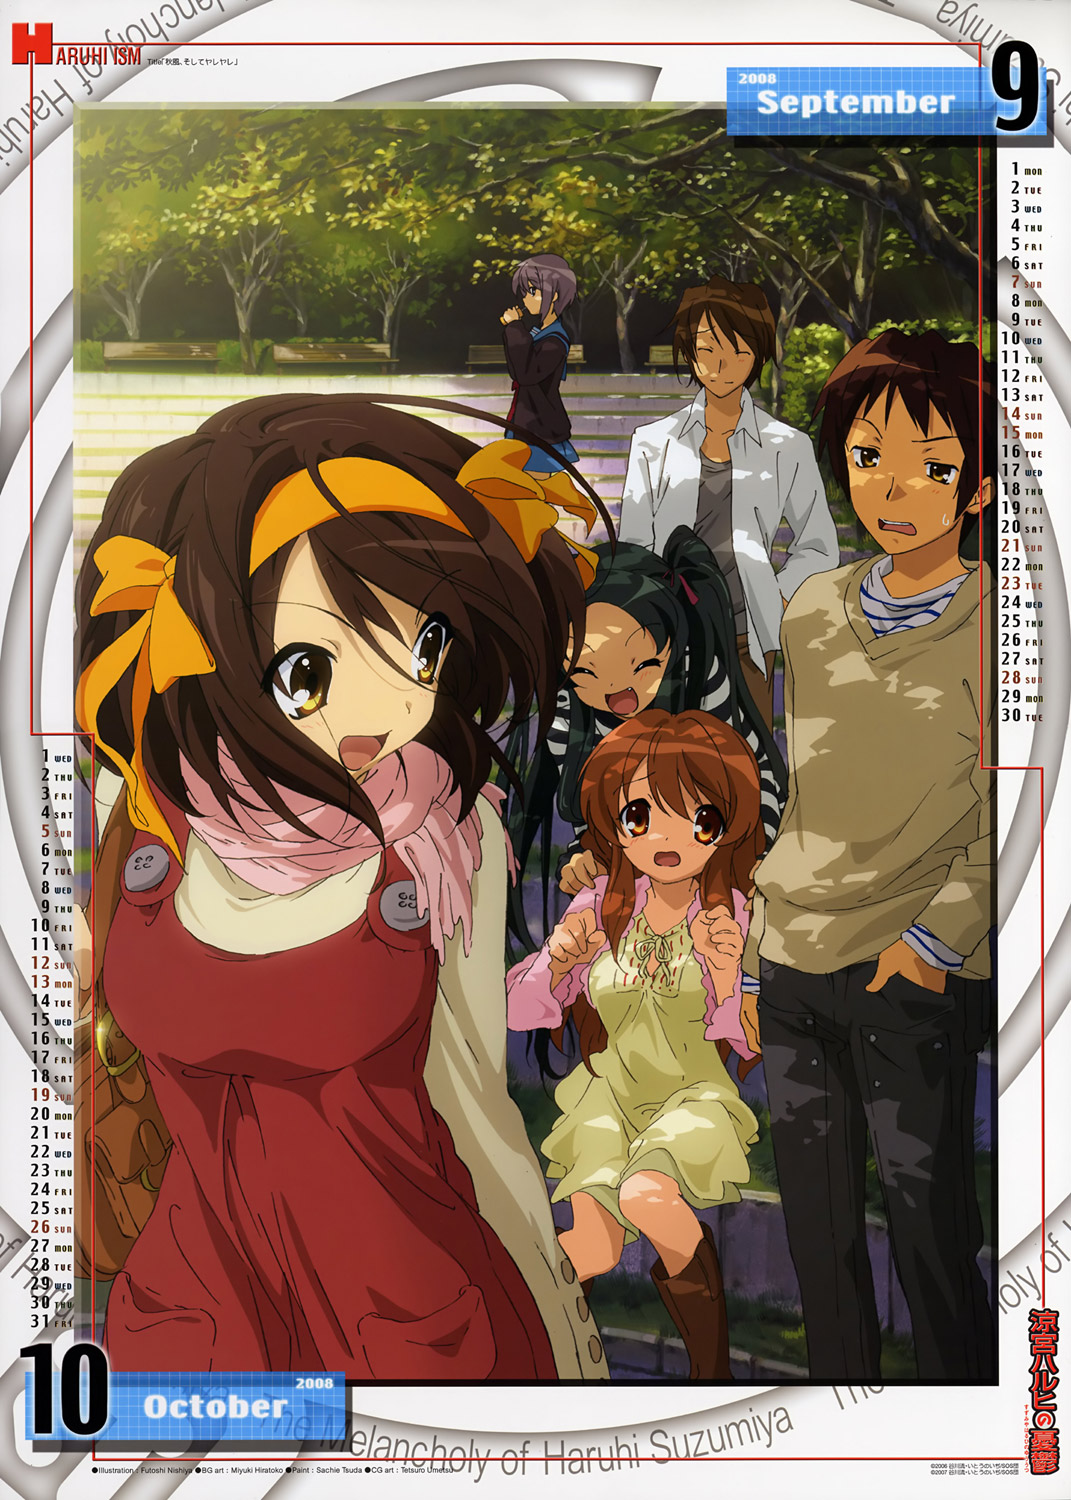 The Melancholy of Haruhi Suzumiya Calendar 2008 image by Kyoto Animation